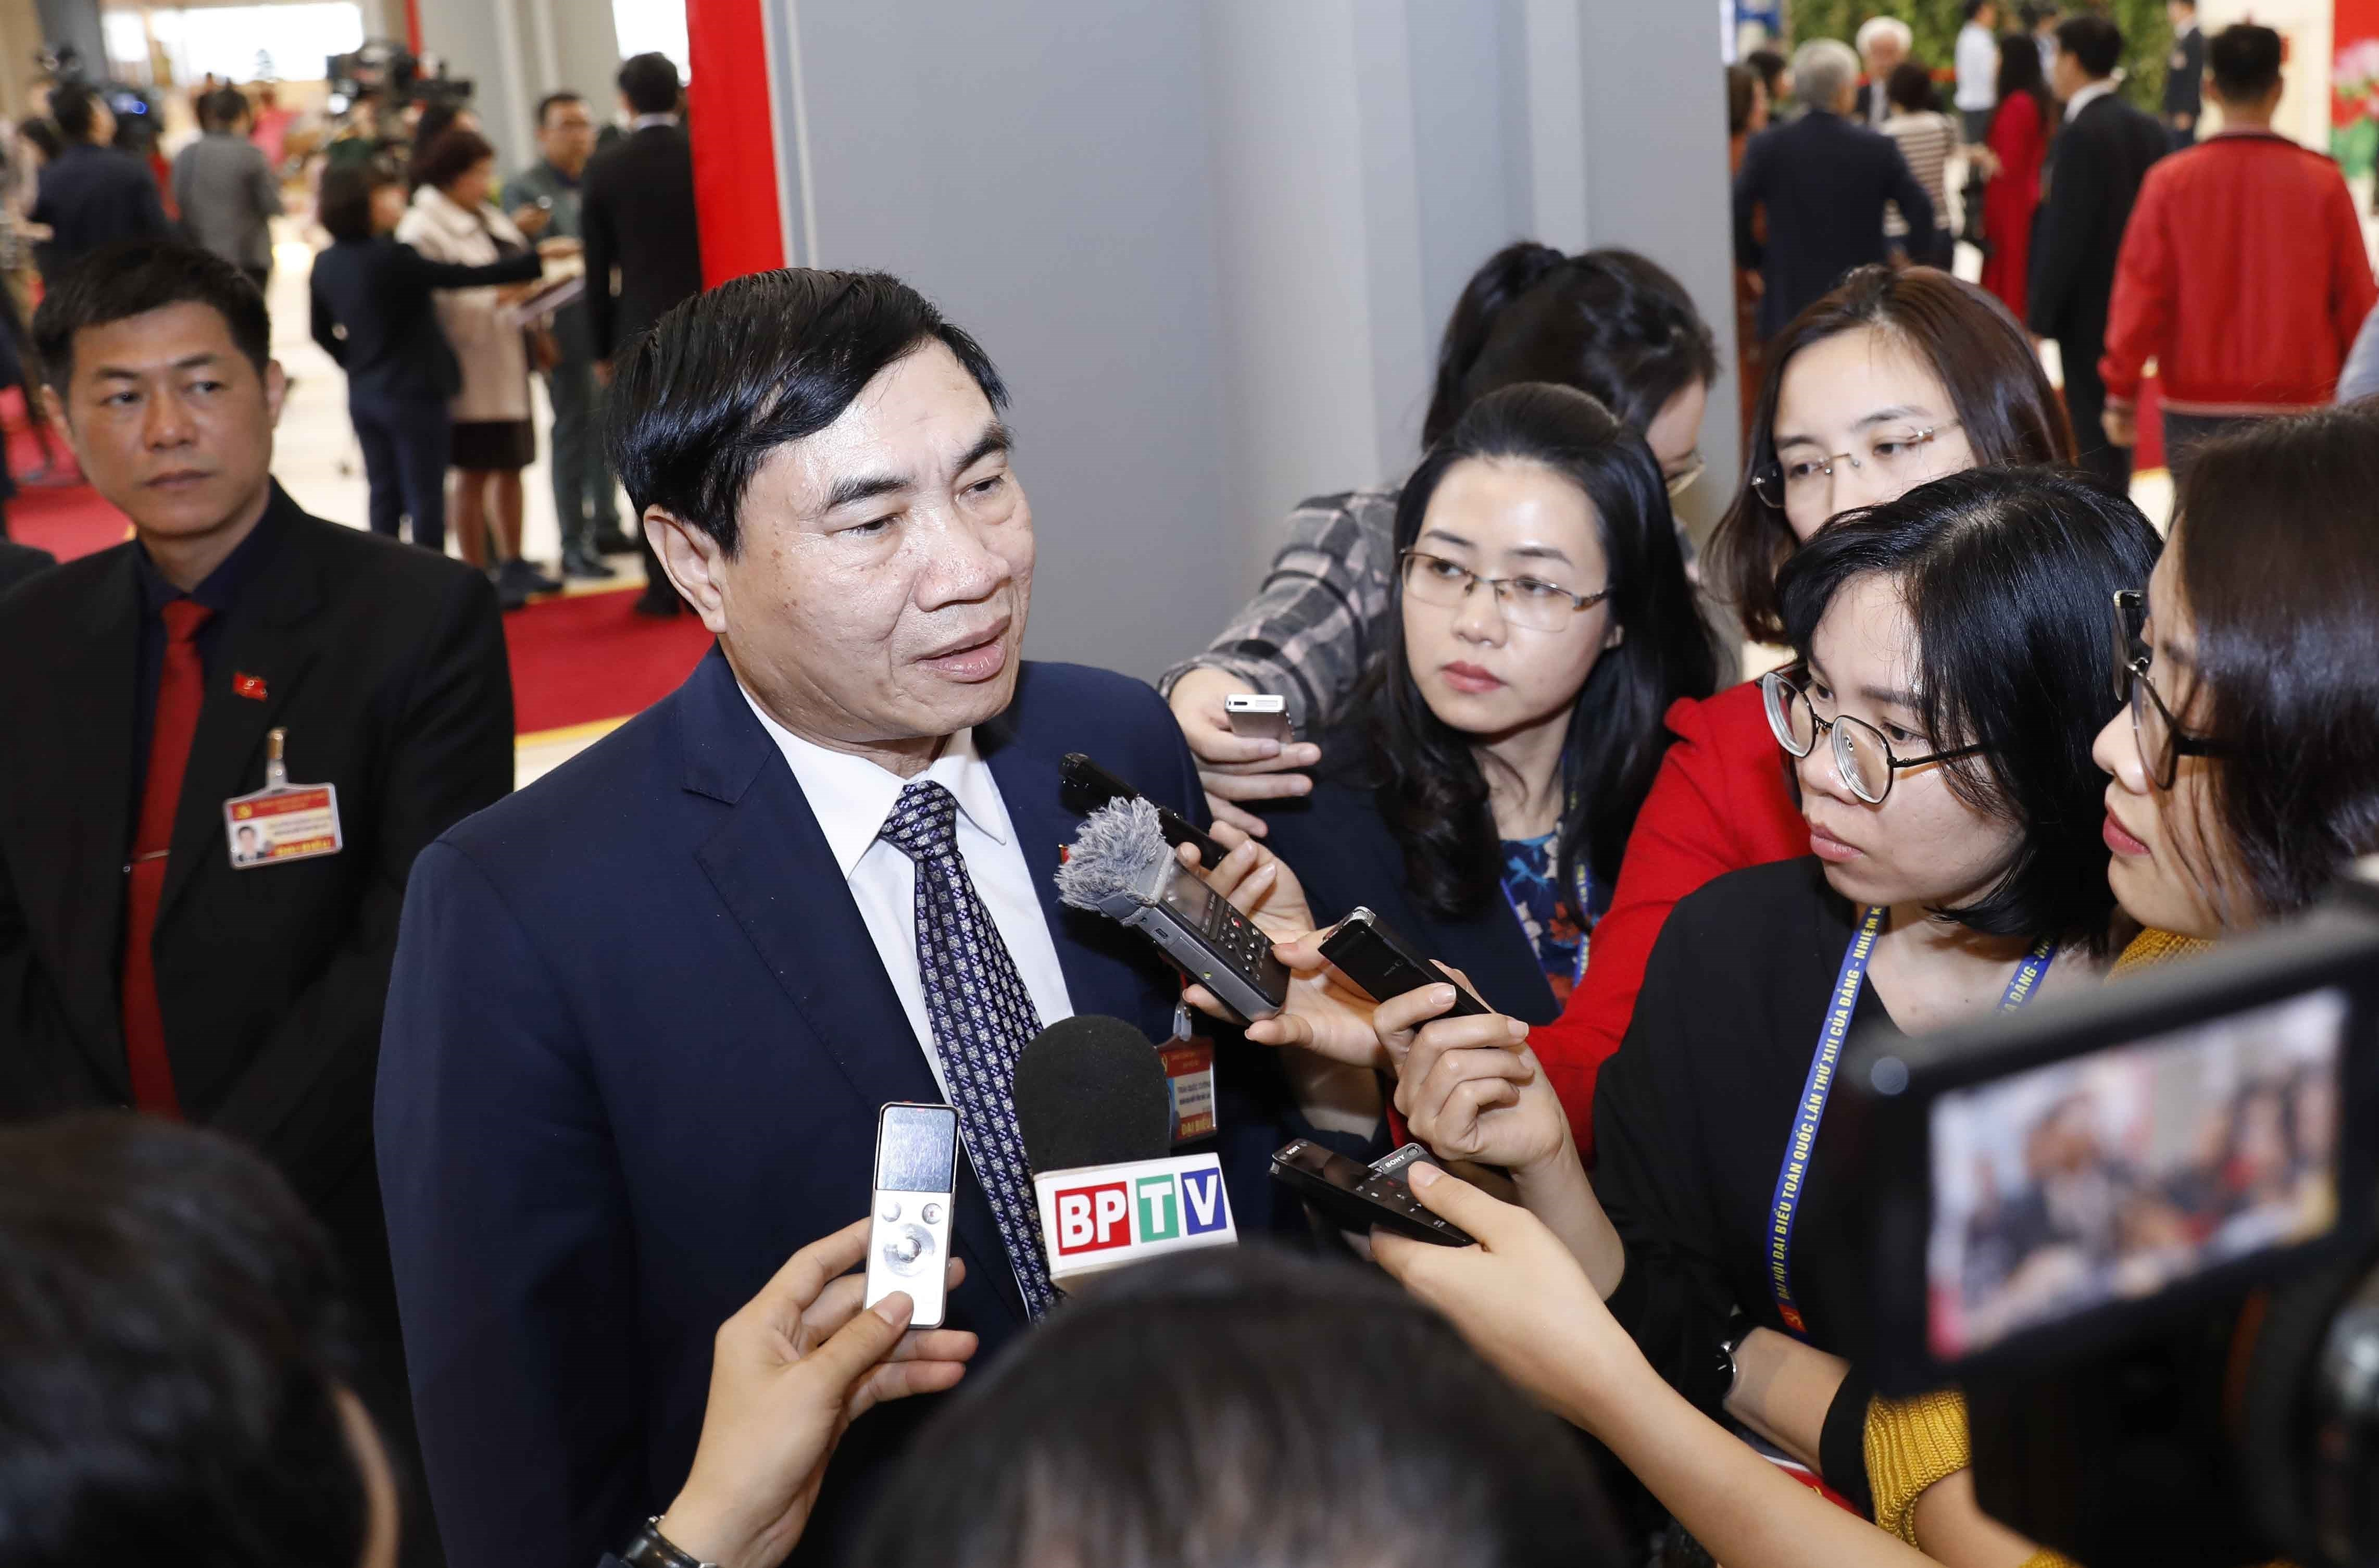 Delegates grant interviews to press on sidelines of Party Congress hinh anh 4